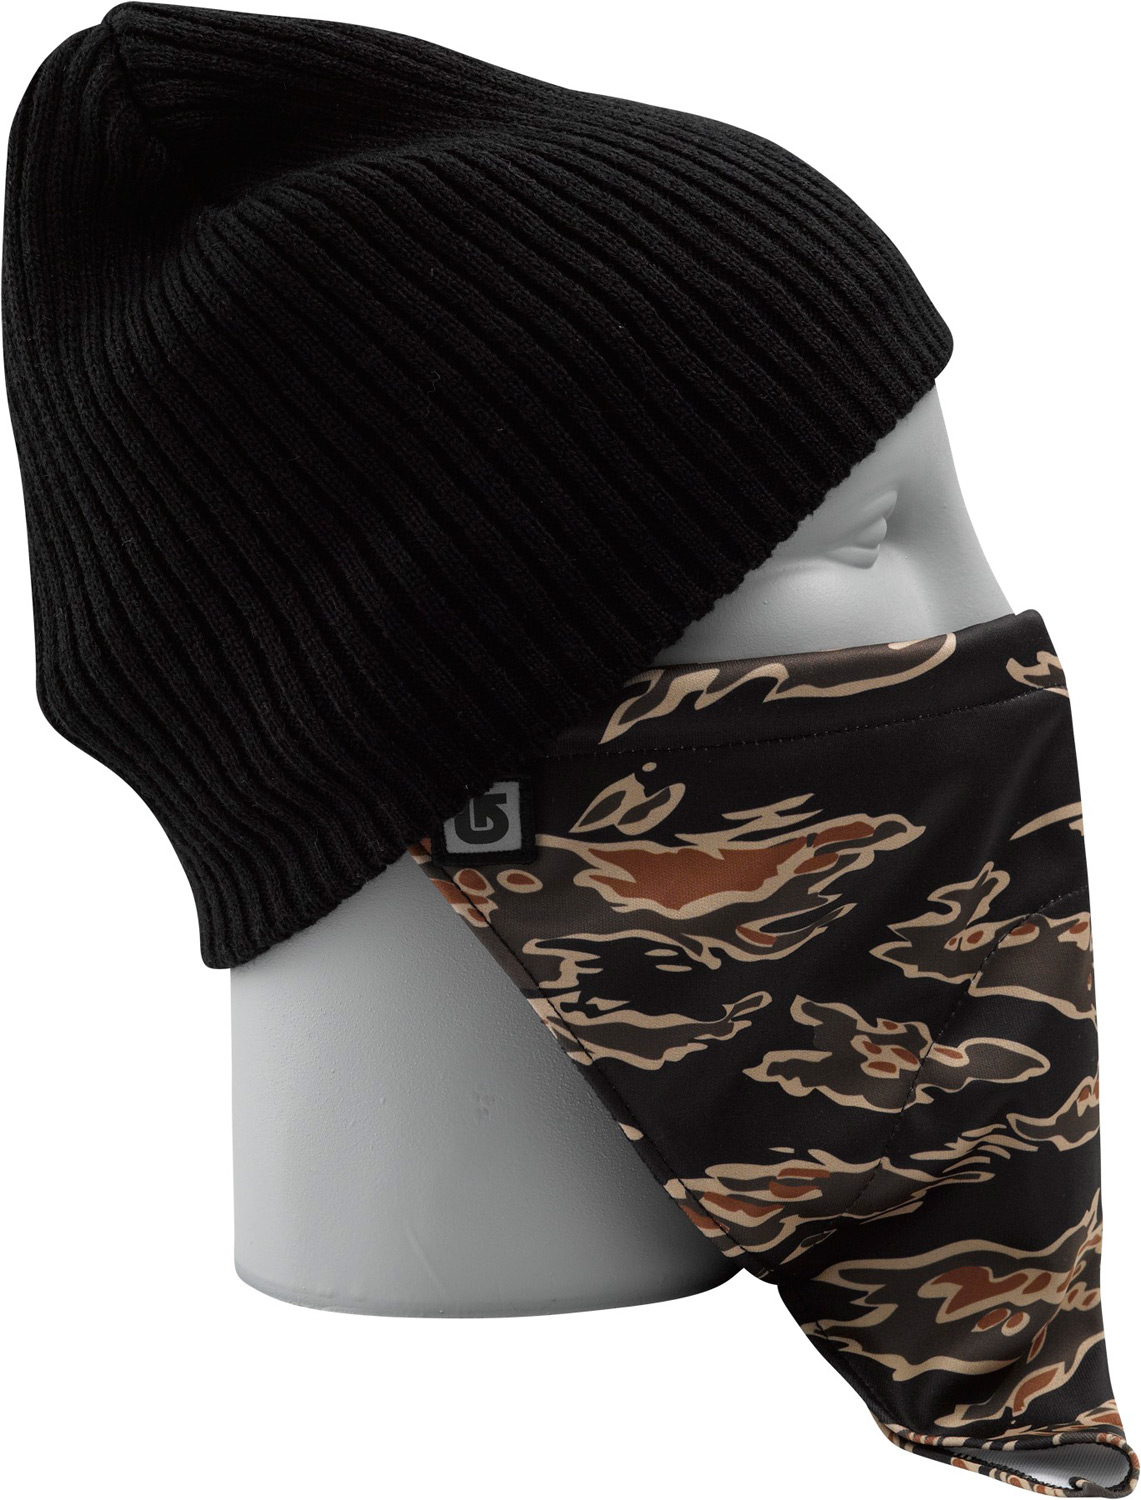 Snowboard Key Features of the Burton Bandito Facemask: 100% Polyester with Fleece Lining Tie-Back Bandana with Toggle Various Burton Screen Prints - $21.00